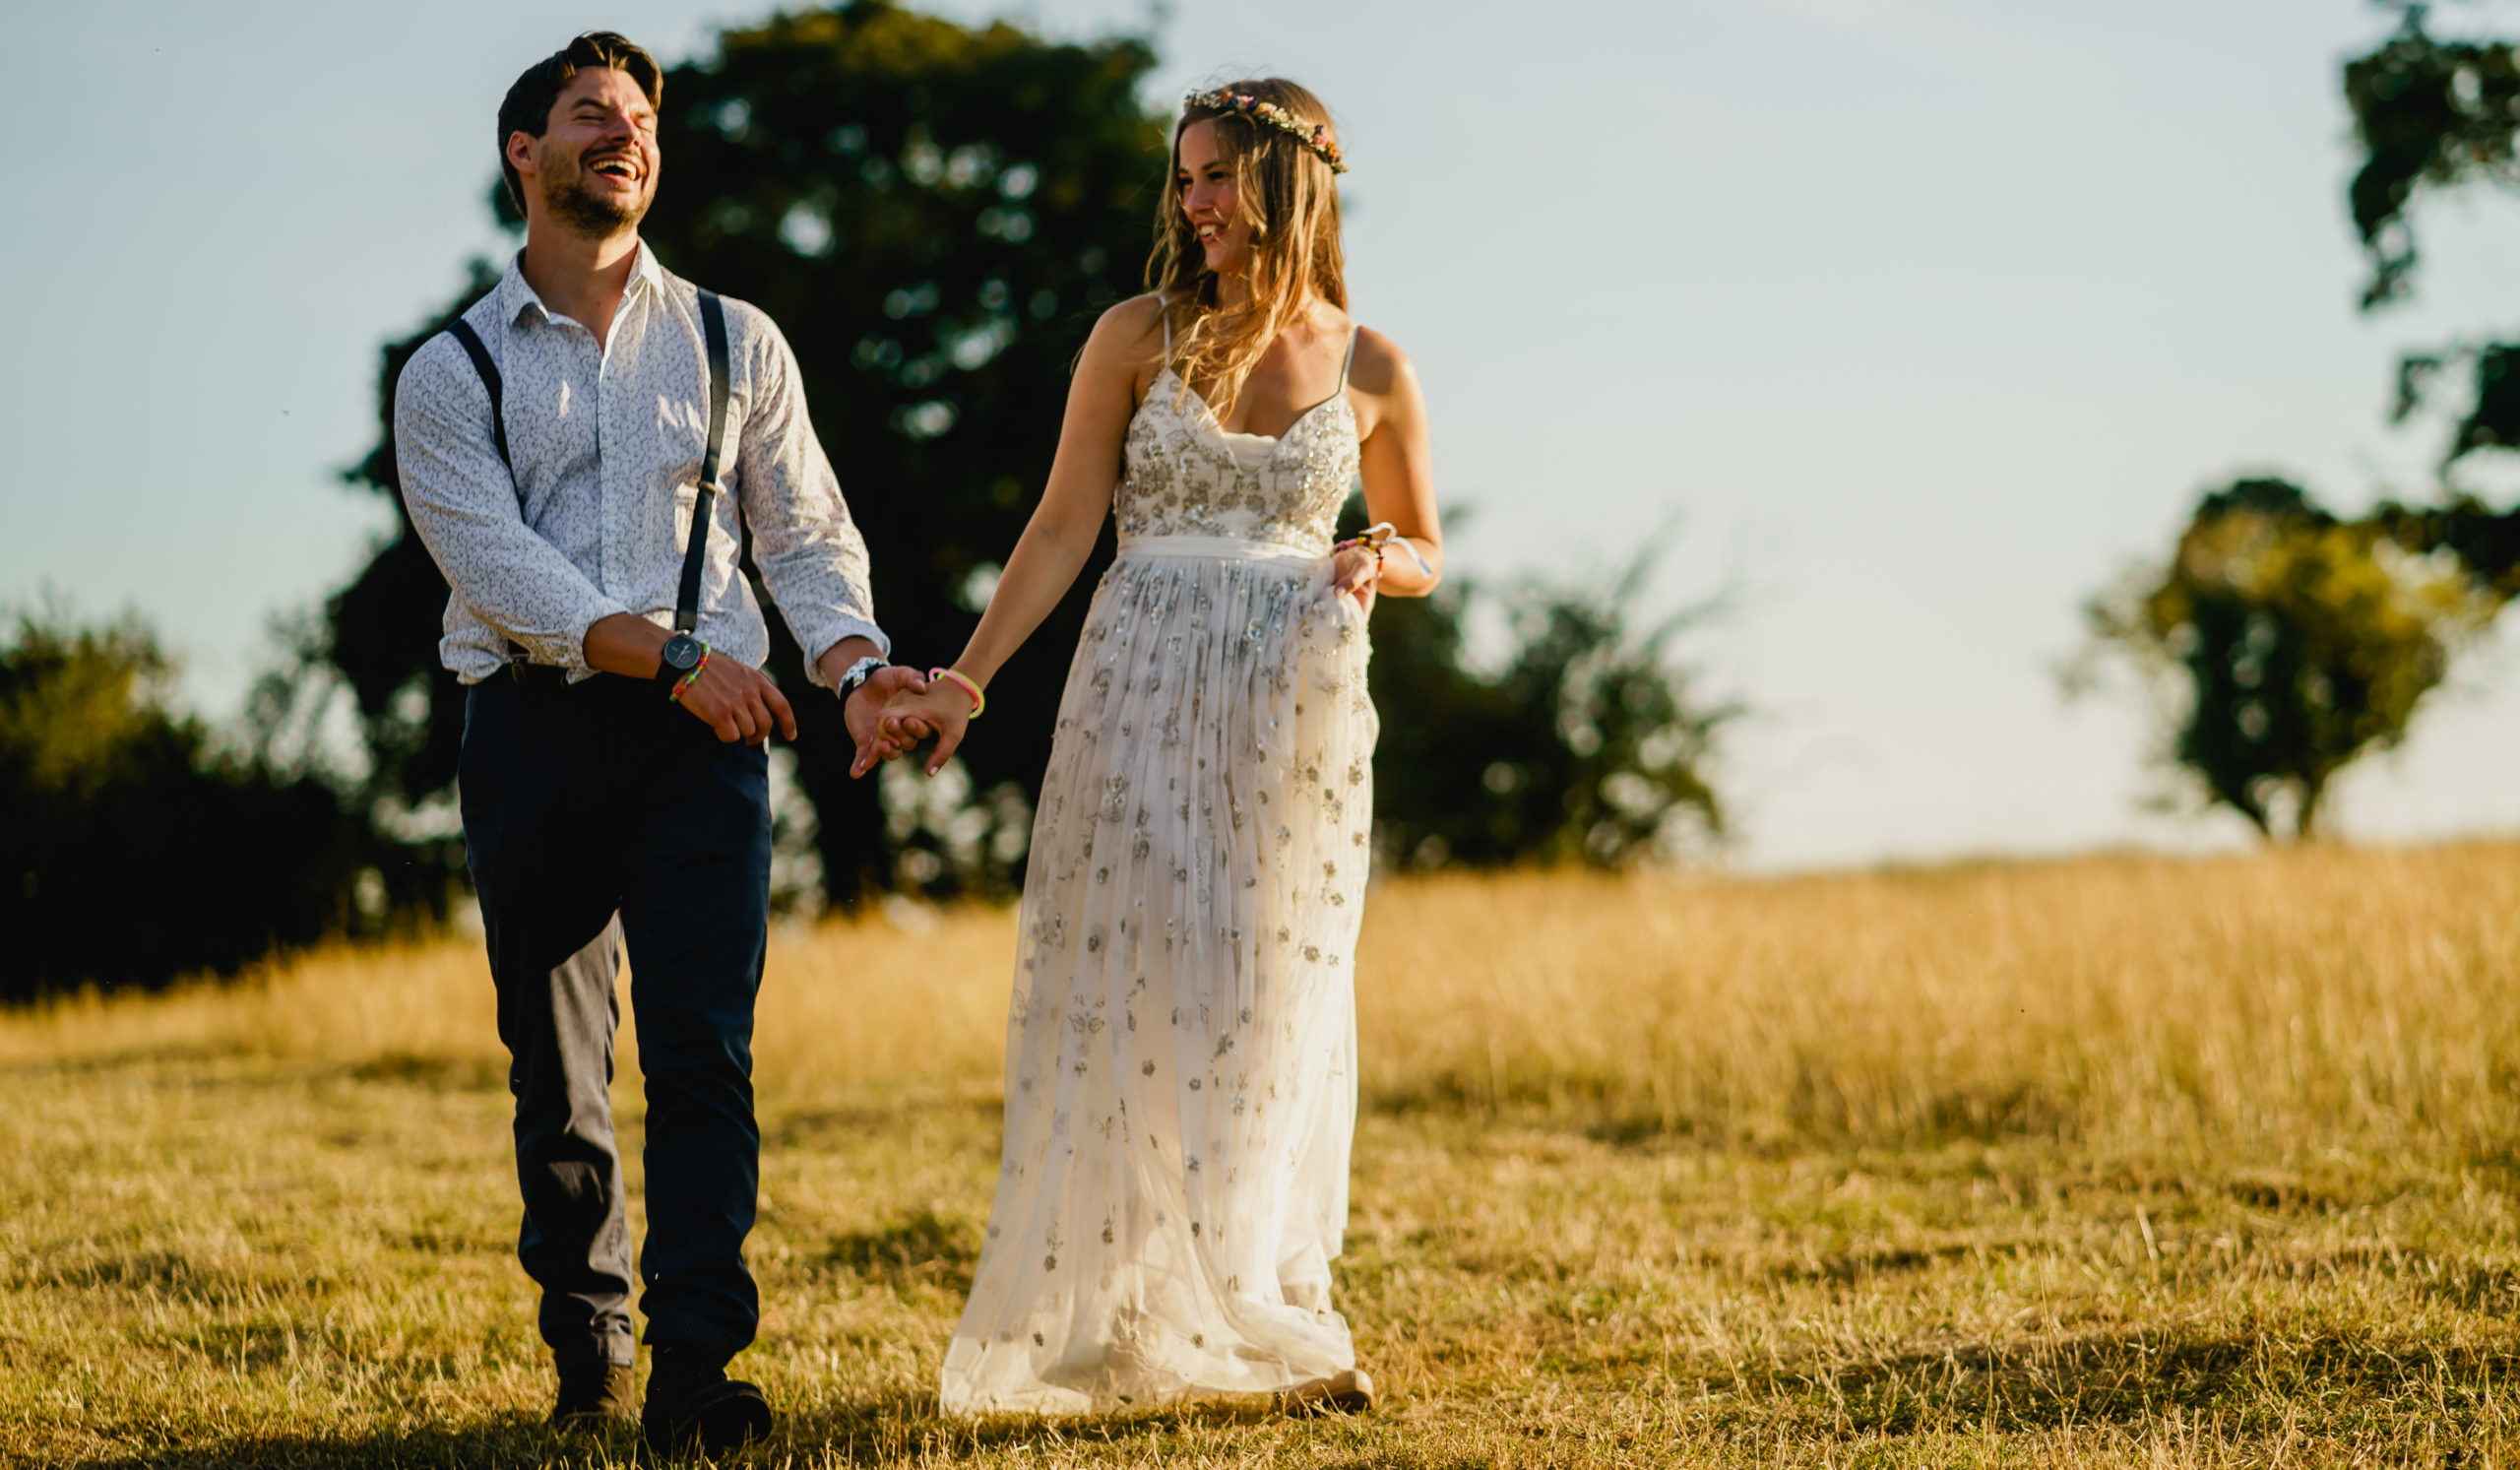 BACK GARDEN FESTIVAL WEDDING – MELTON MOWBRAY, LEICESTERSHIRE